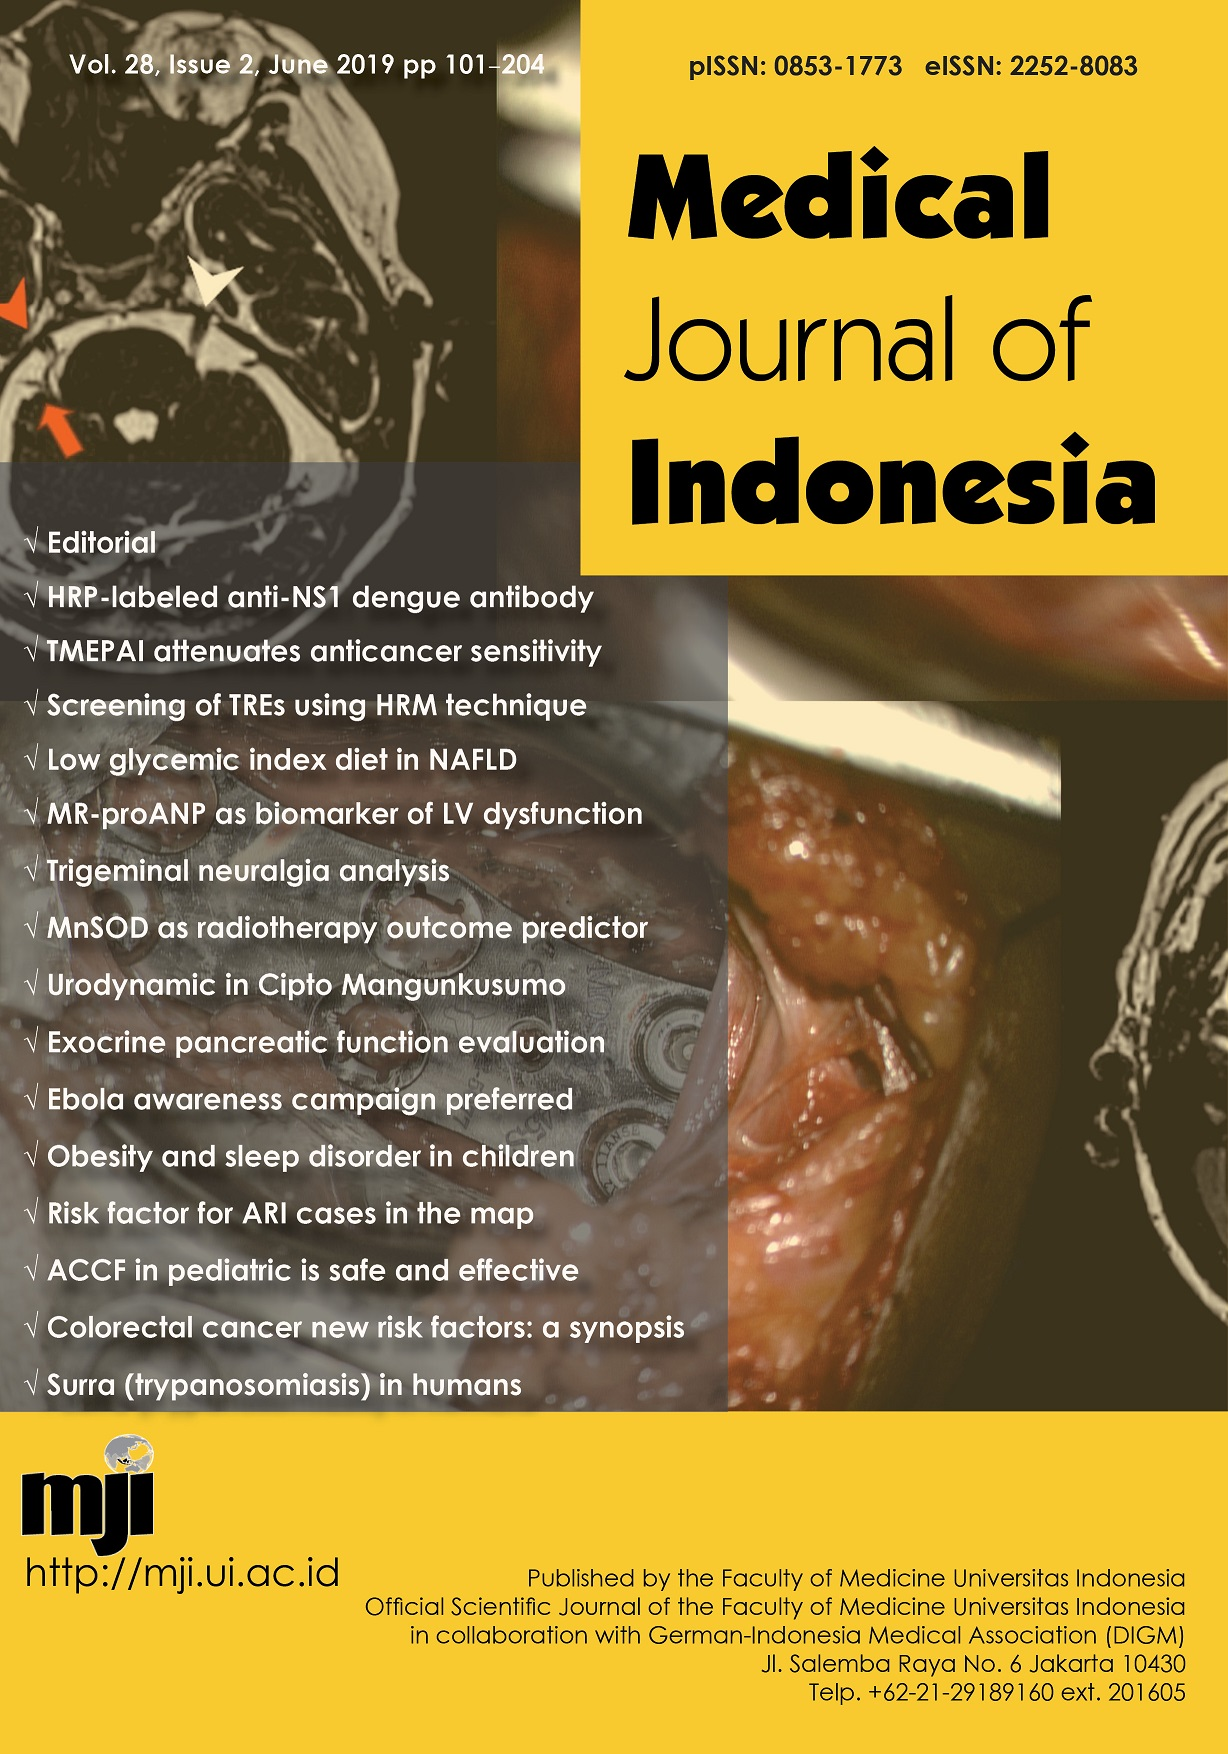 Medical Journal of Indonesia